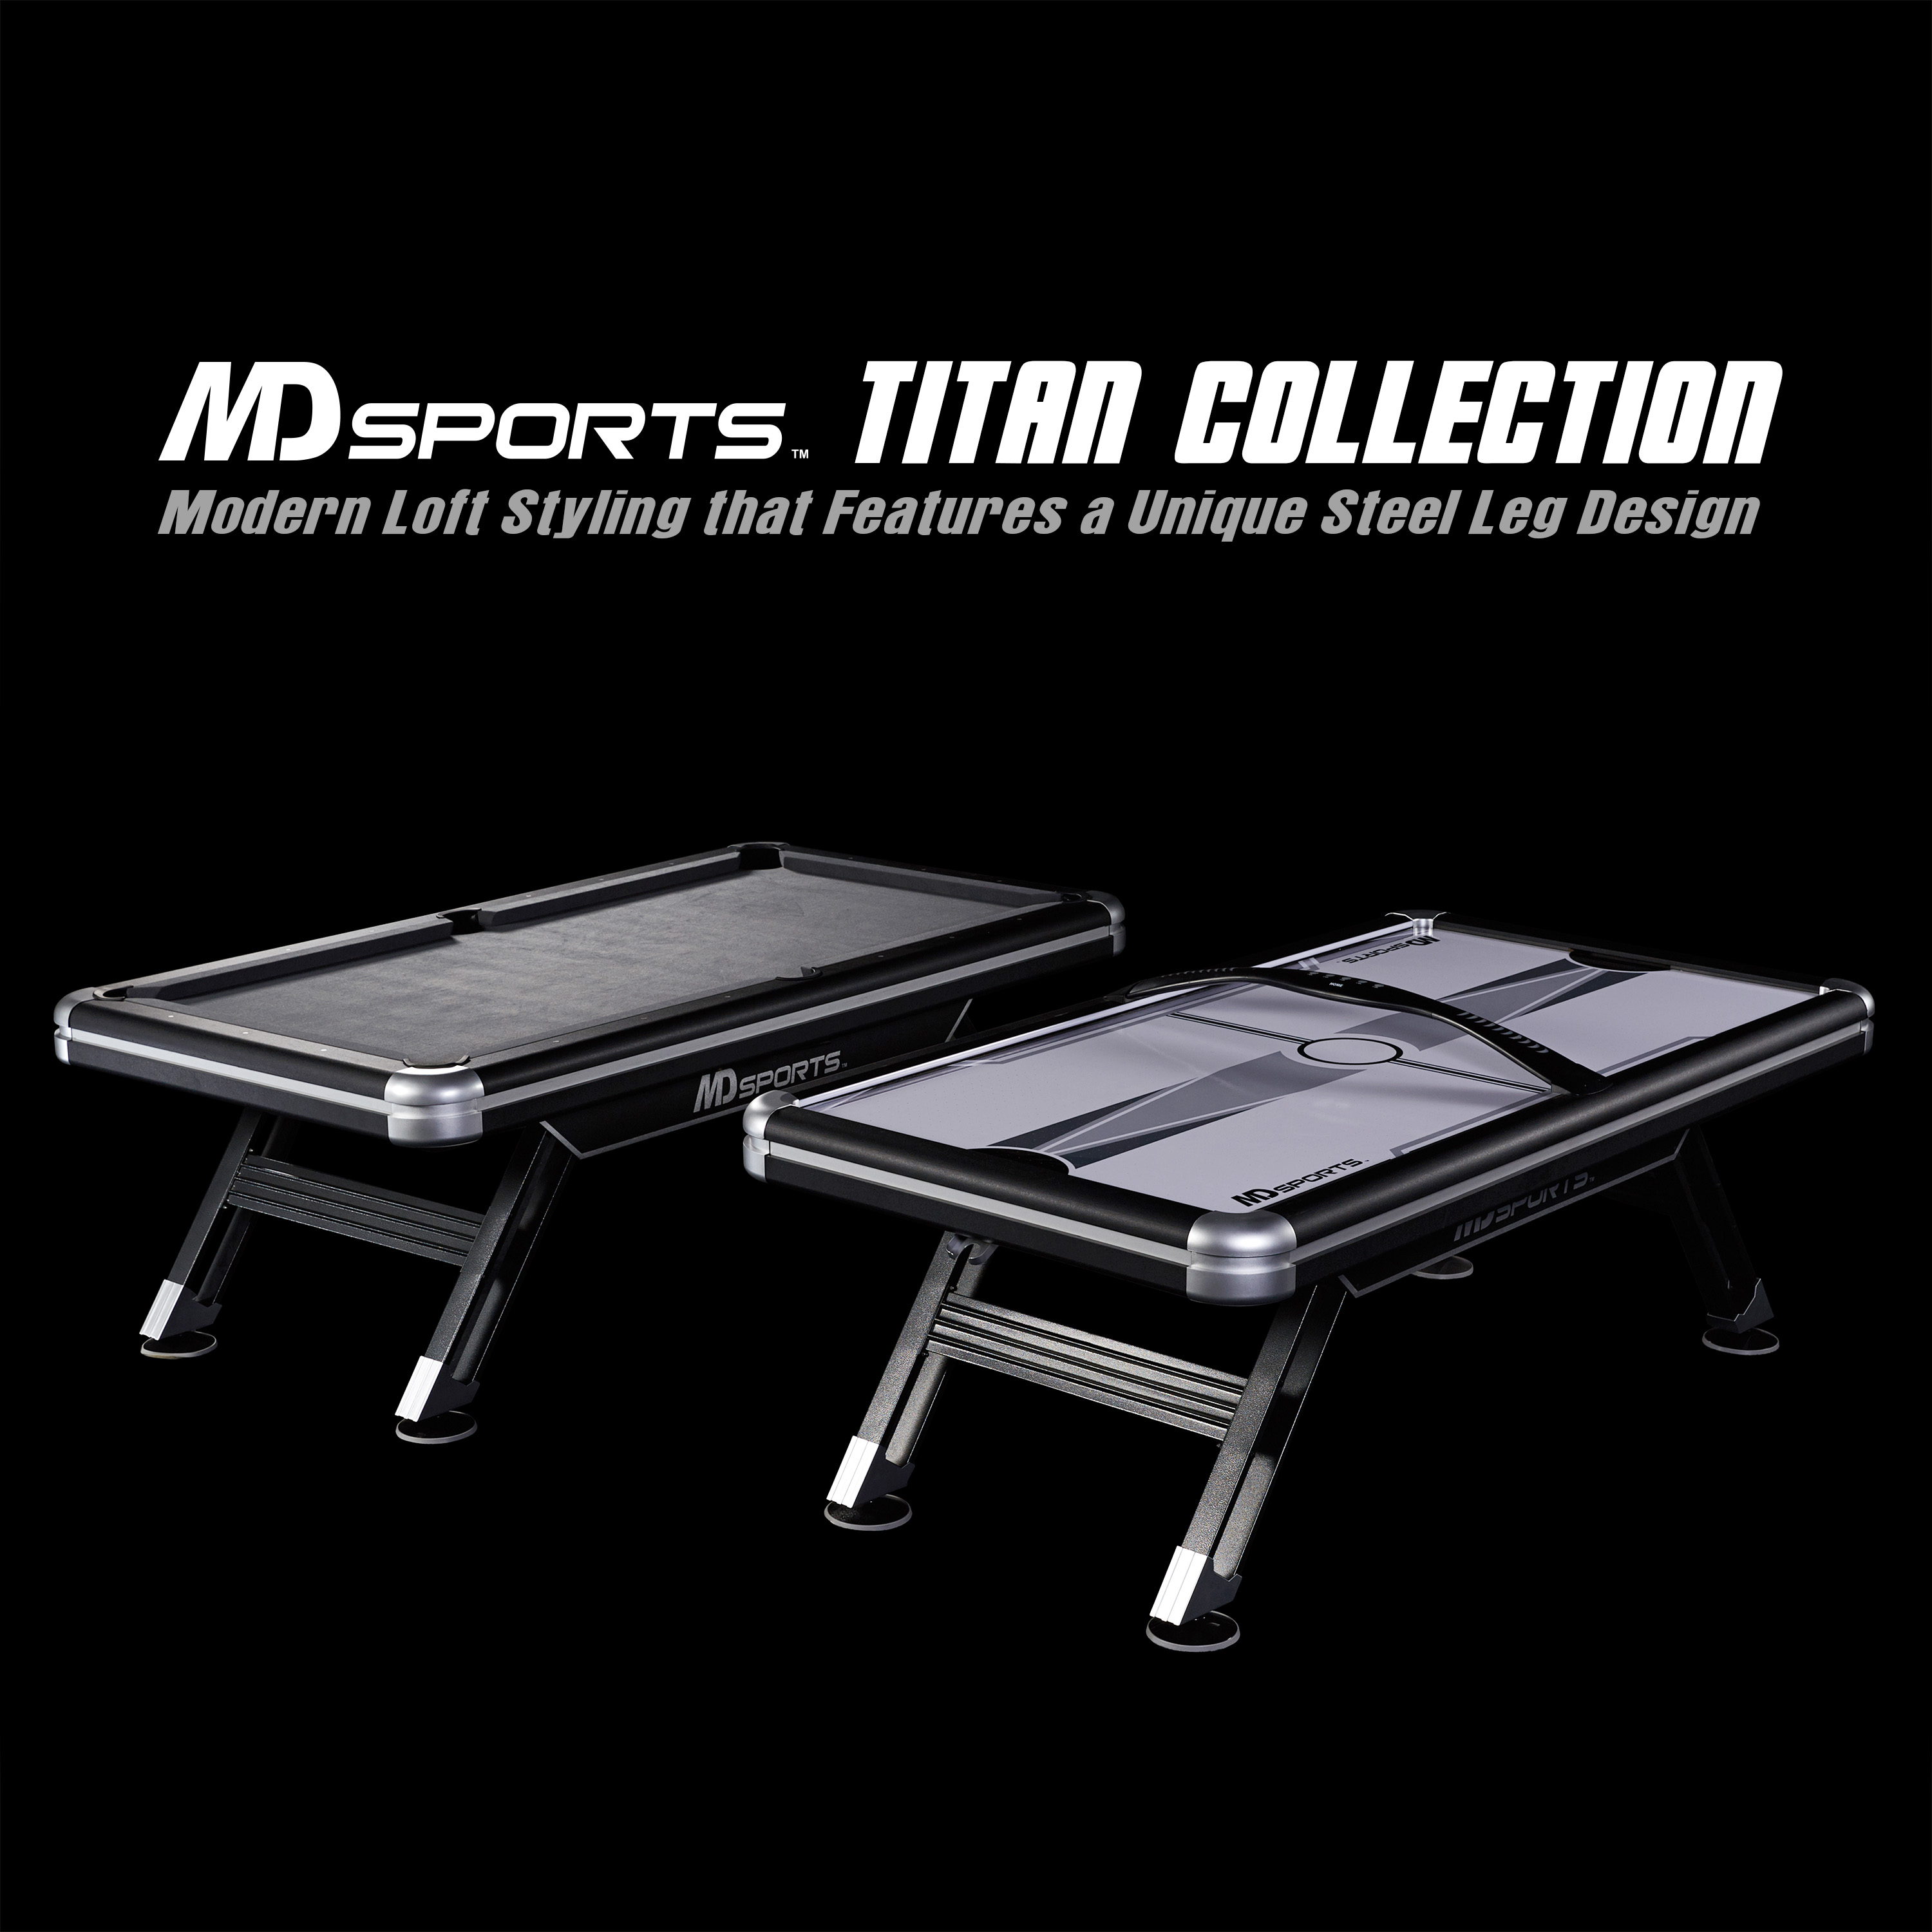 MD Sports Titan Ft Billiards Pool Table Walmartcom - Pool table stores in maryland